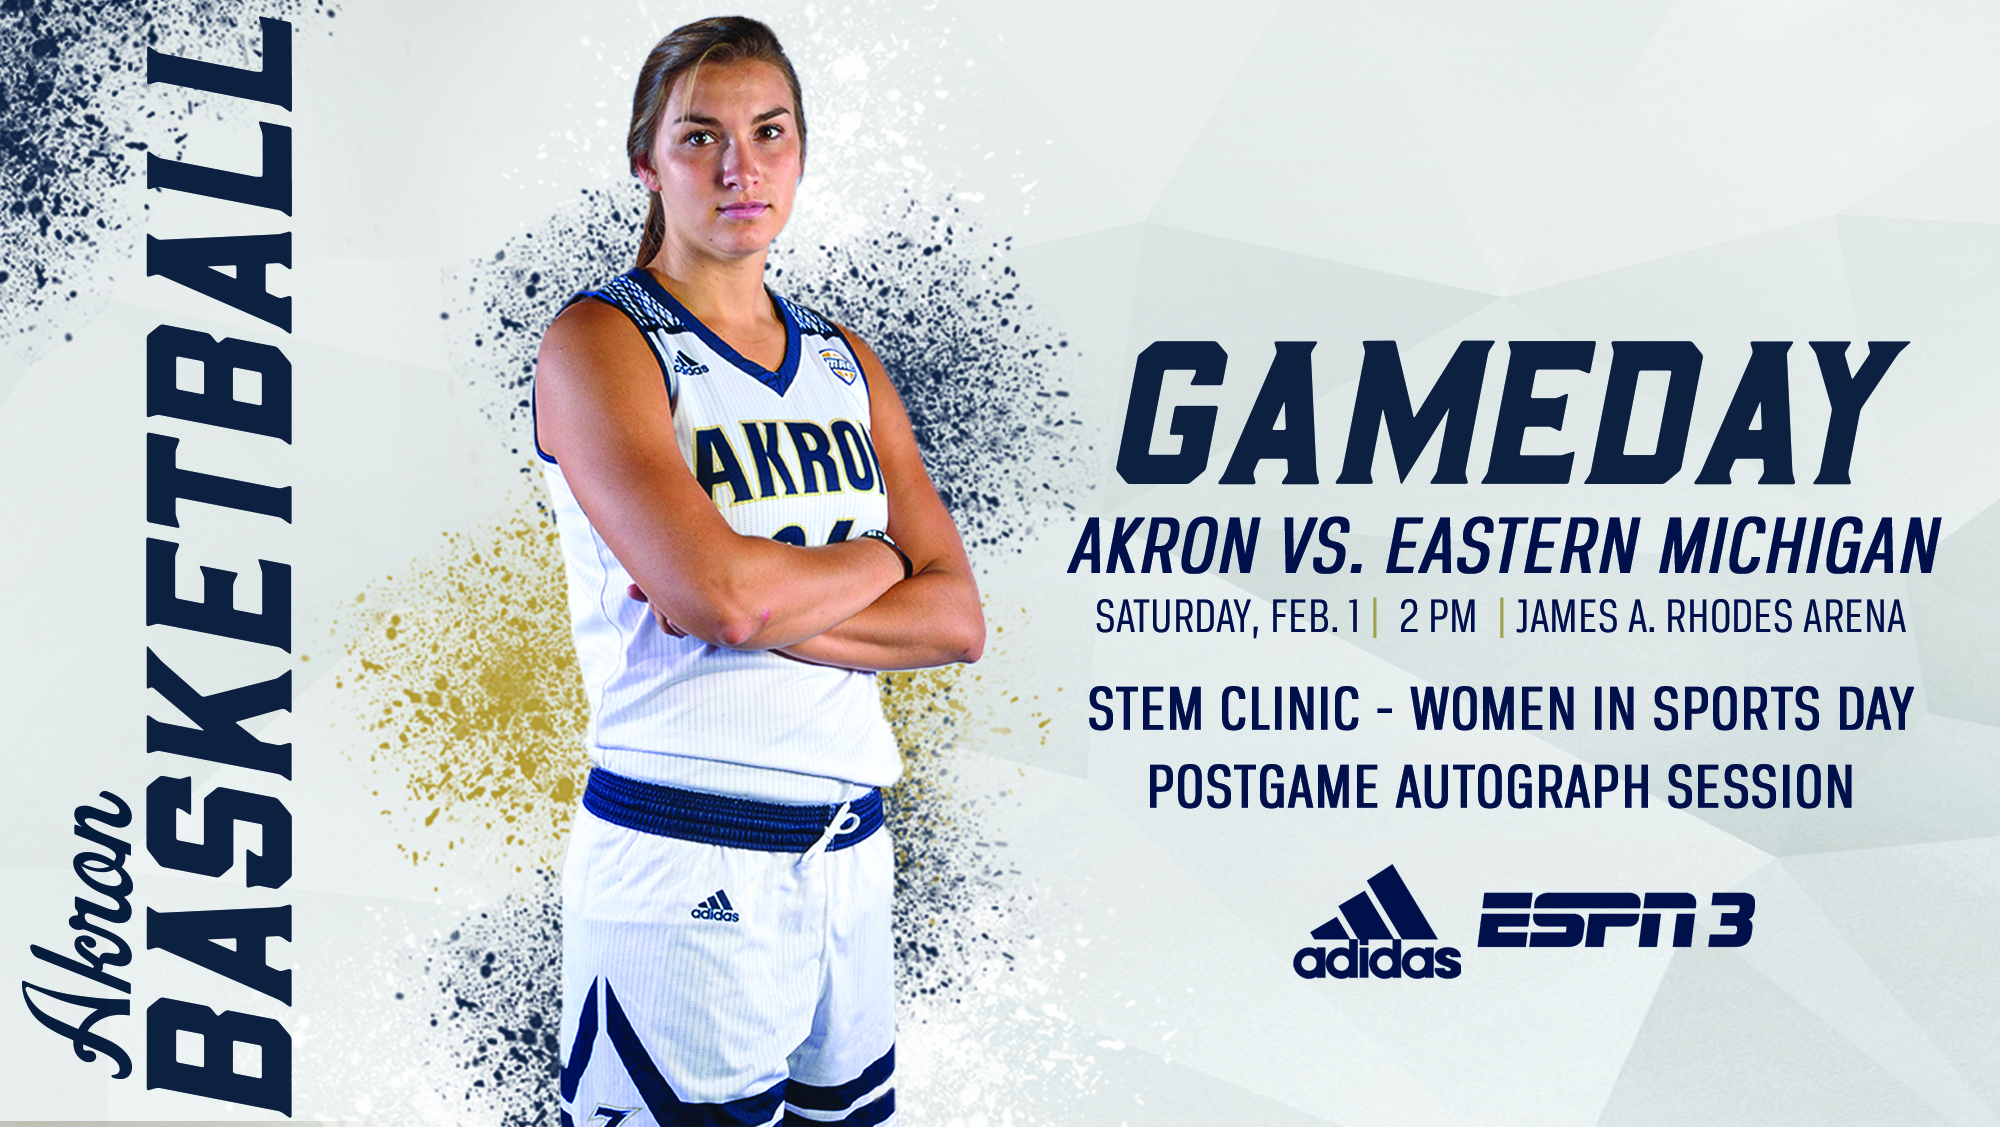 eastern mi vs akron